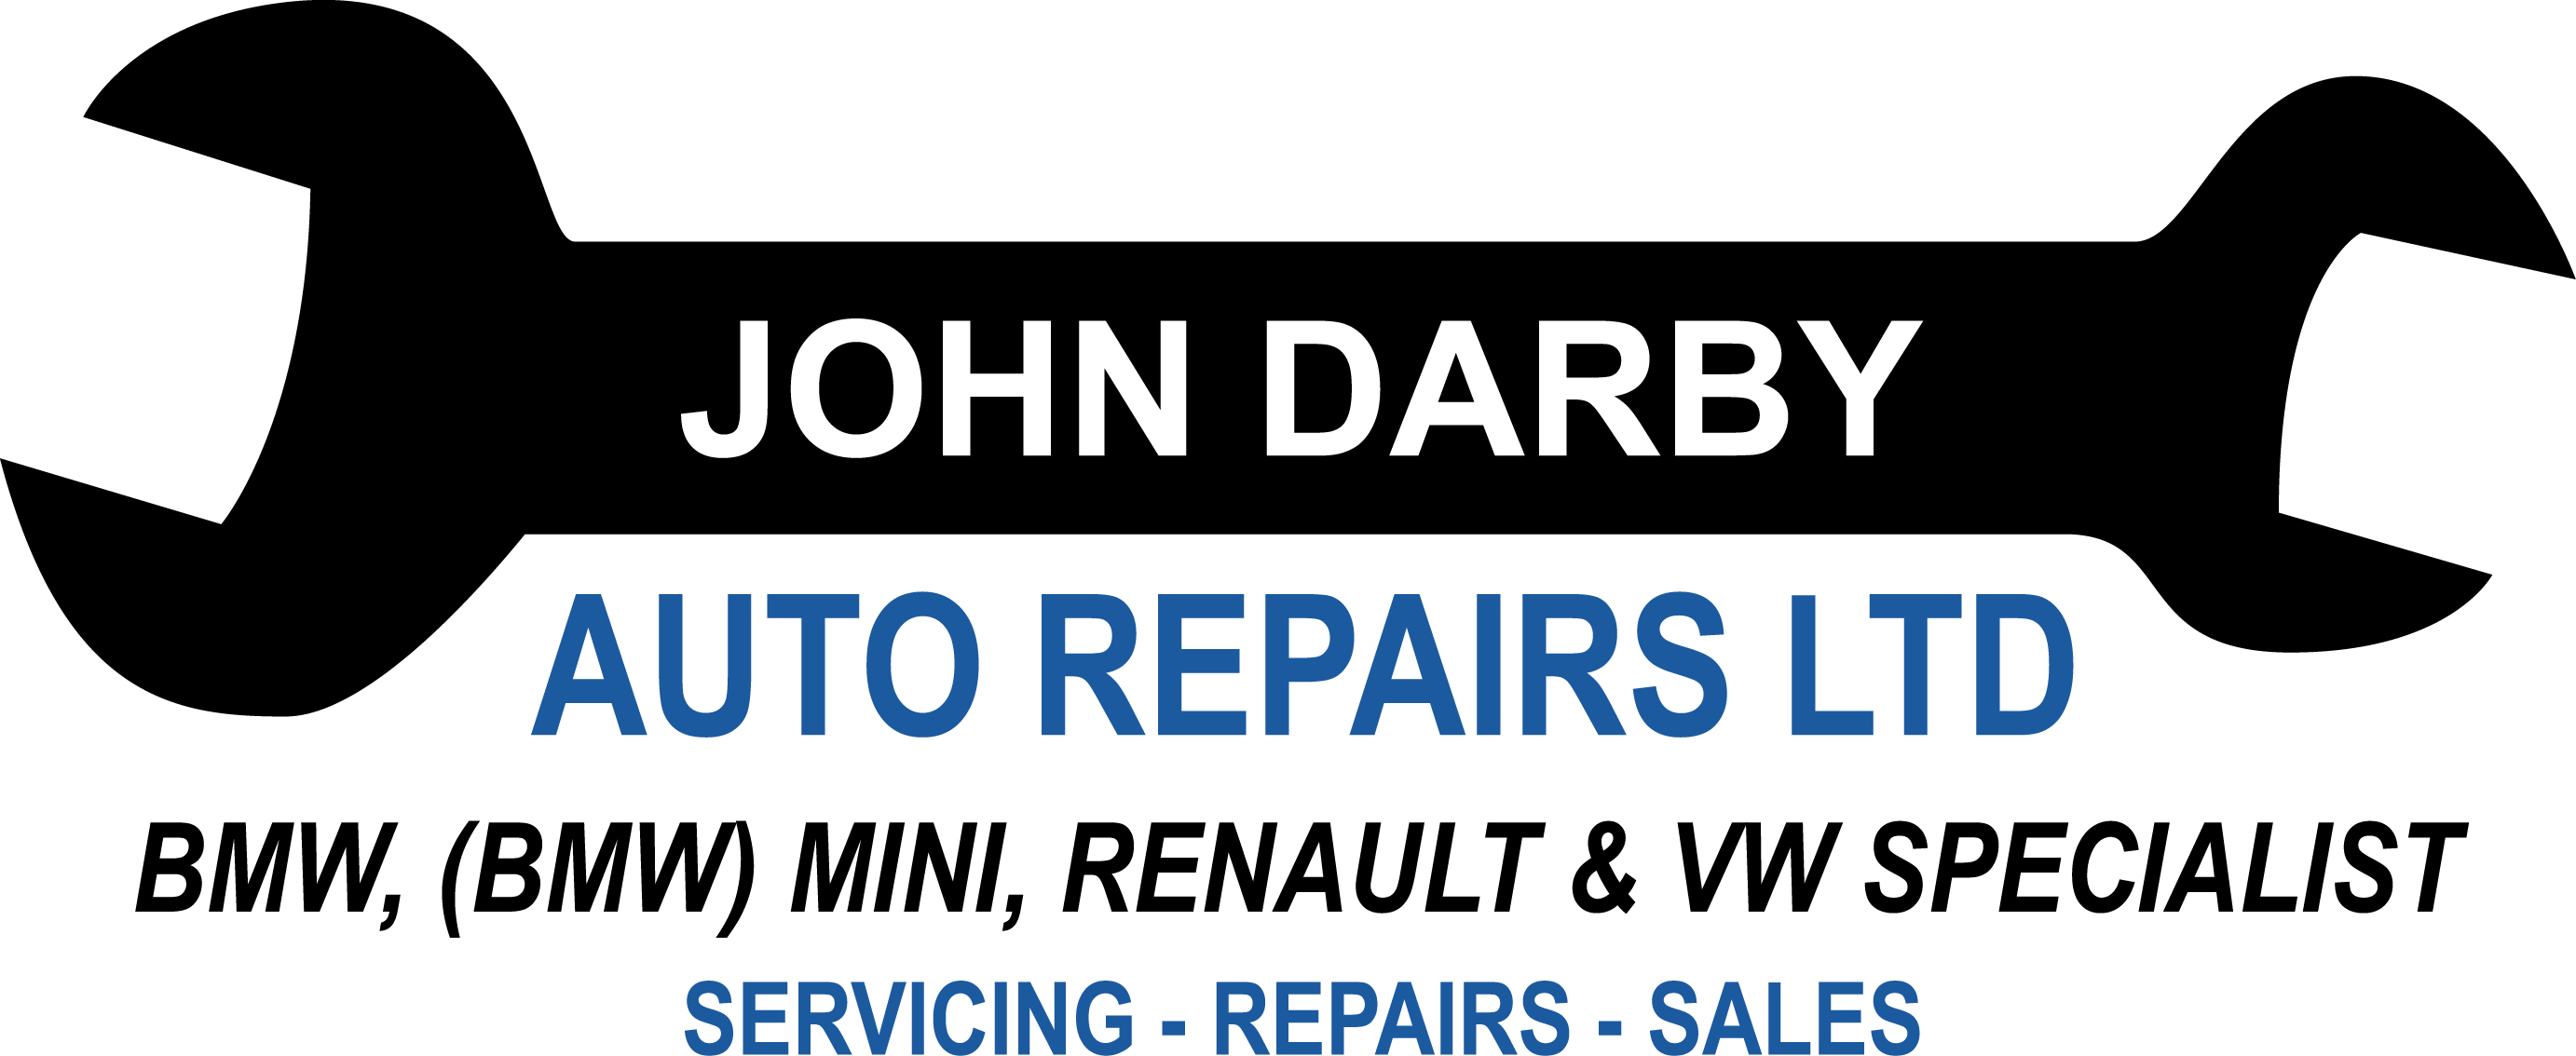 John Darby Auto Repairs Ltd Logo